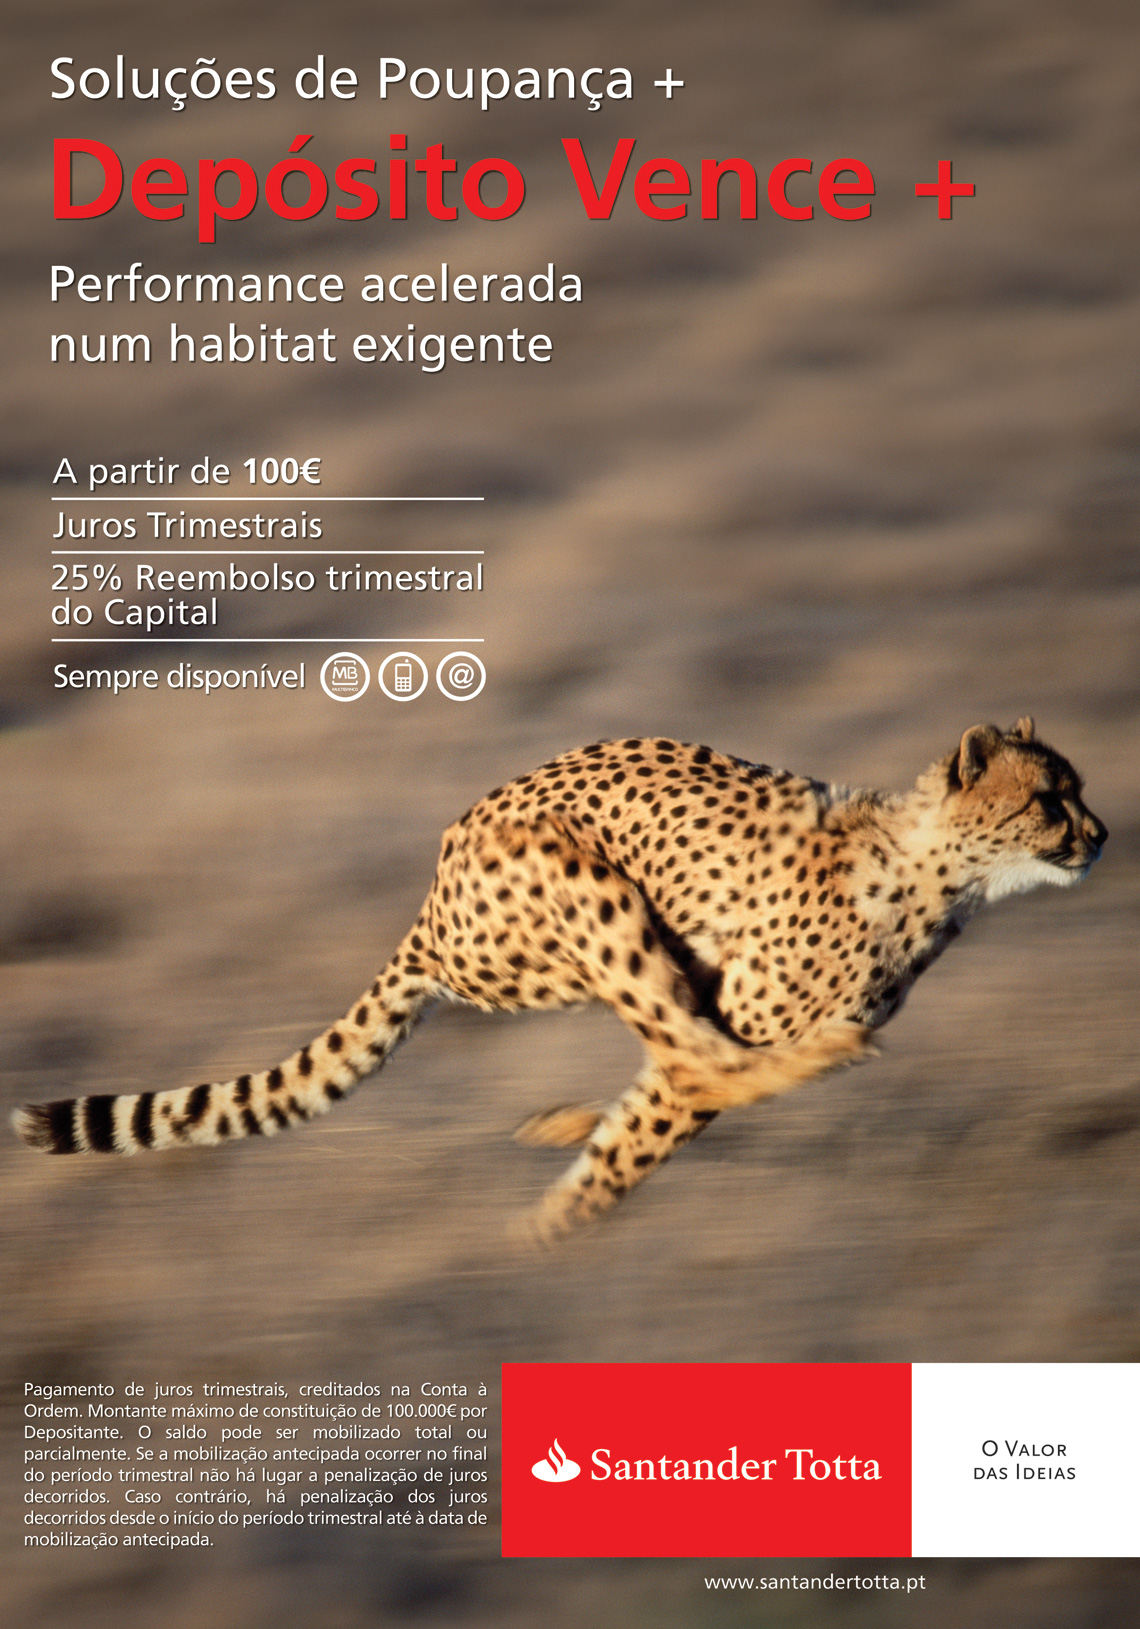 Banco Santander Totta A Bank with loads of Ideas